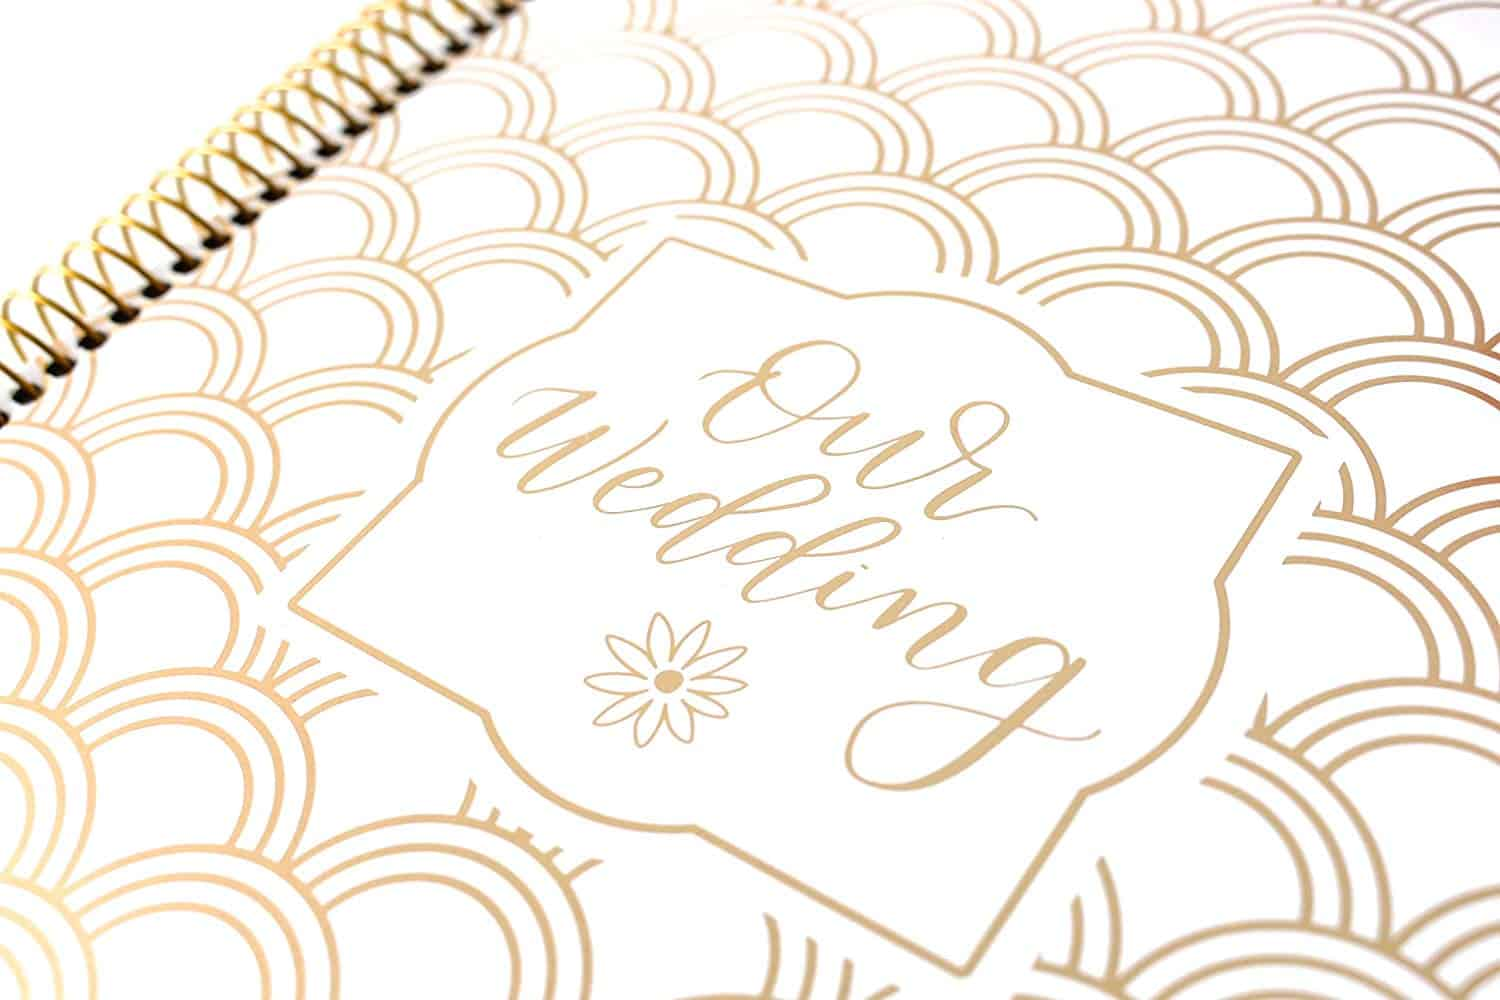 Gold Foil Scallops Hard Cover Wedding Planner Books and Organizers for Brides Engagement Gift Gold Foiling Bridal Planner